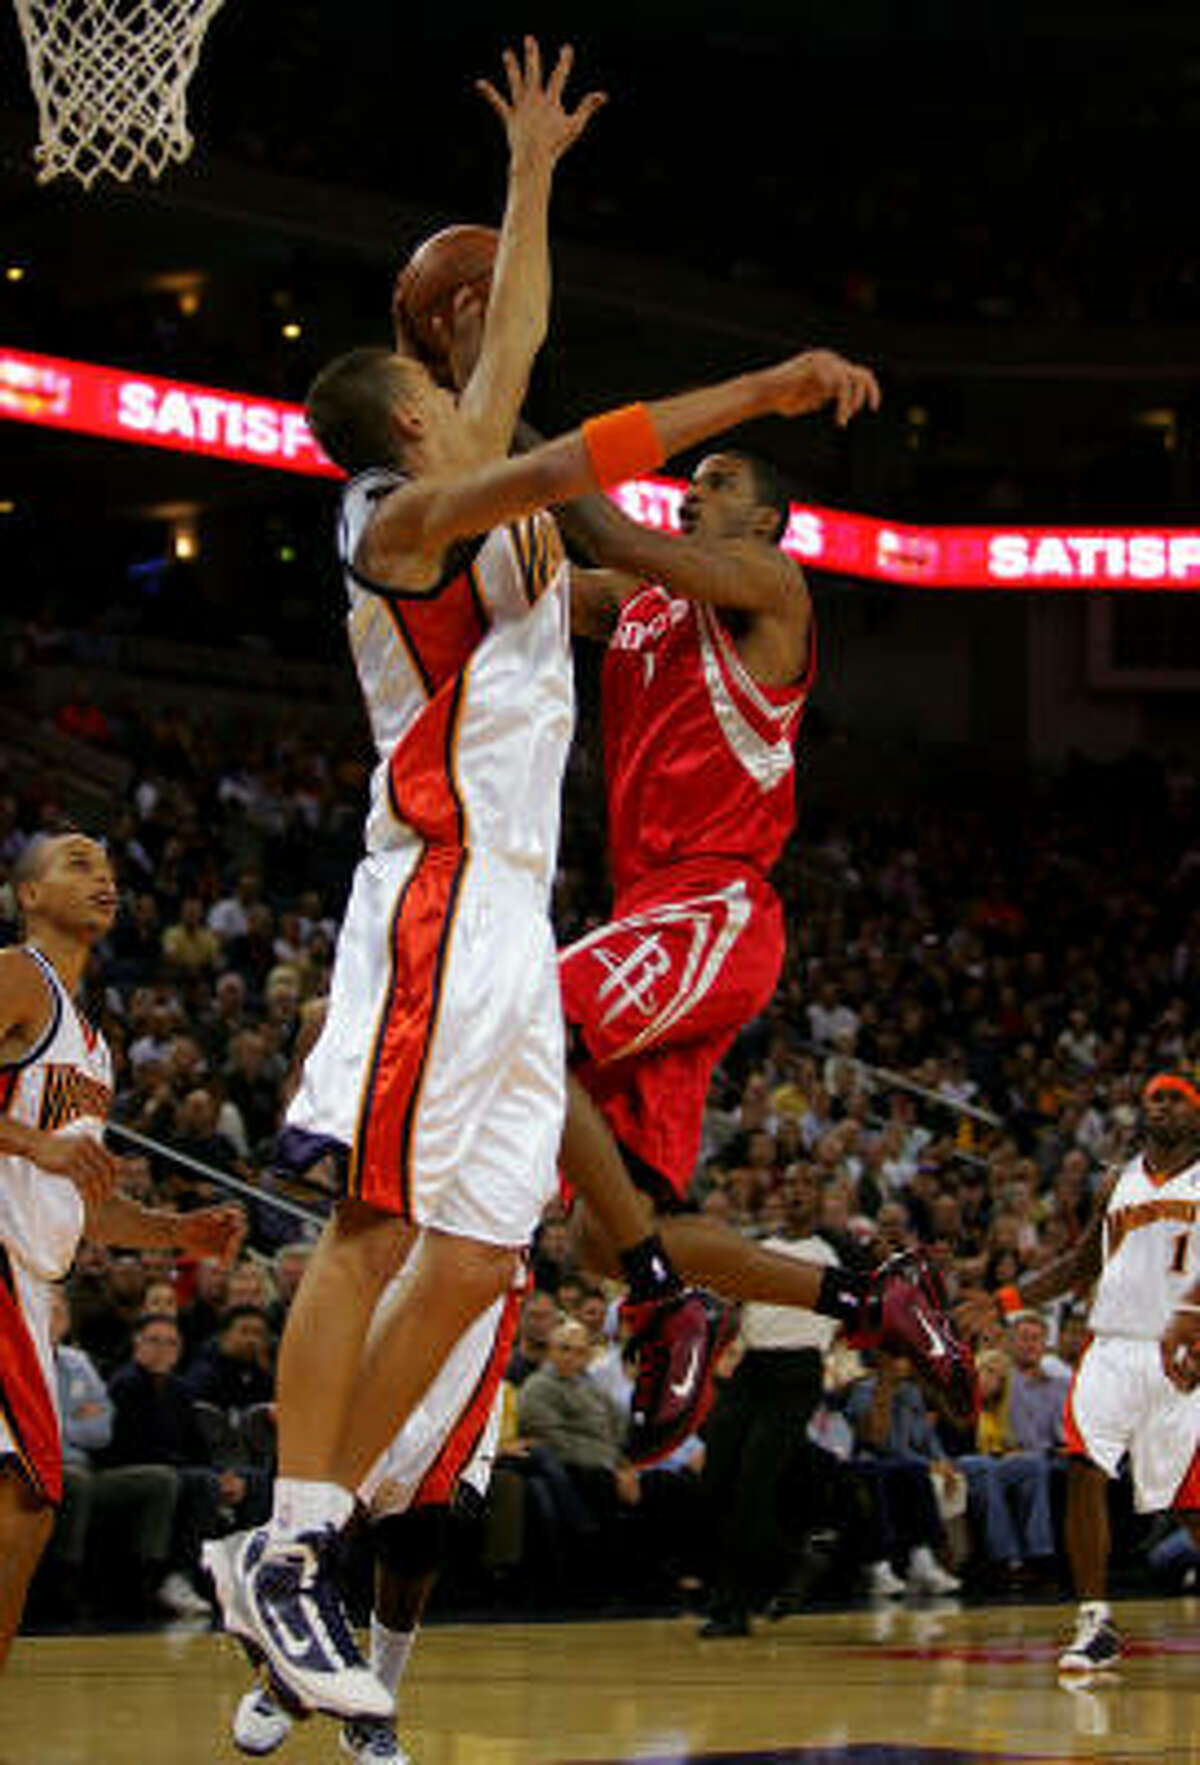 Trevor Ariza goes up for a shot early in the game. Ariza scored 14 points in the first quarter and 25 for the game.